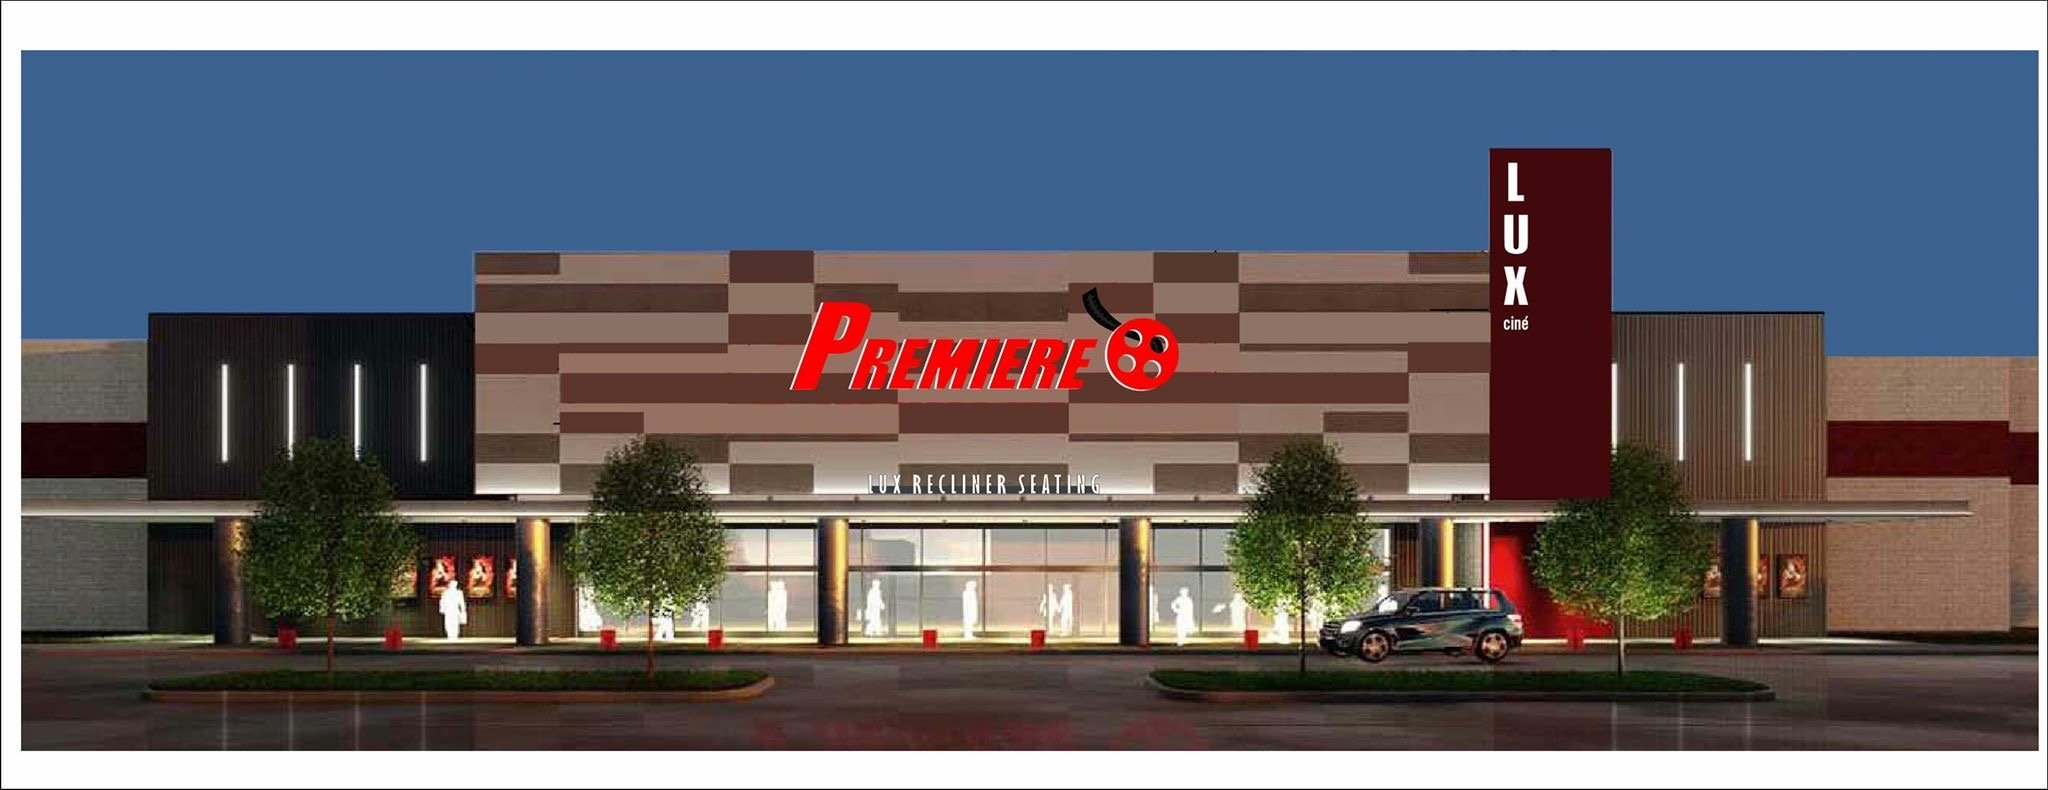 Lakeshore PREMIERE LUX Cine and Pizza Pub - Coming Soon Photo